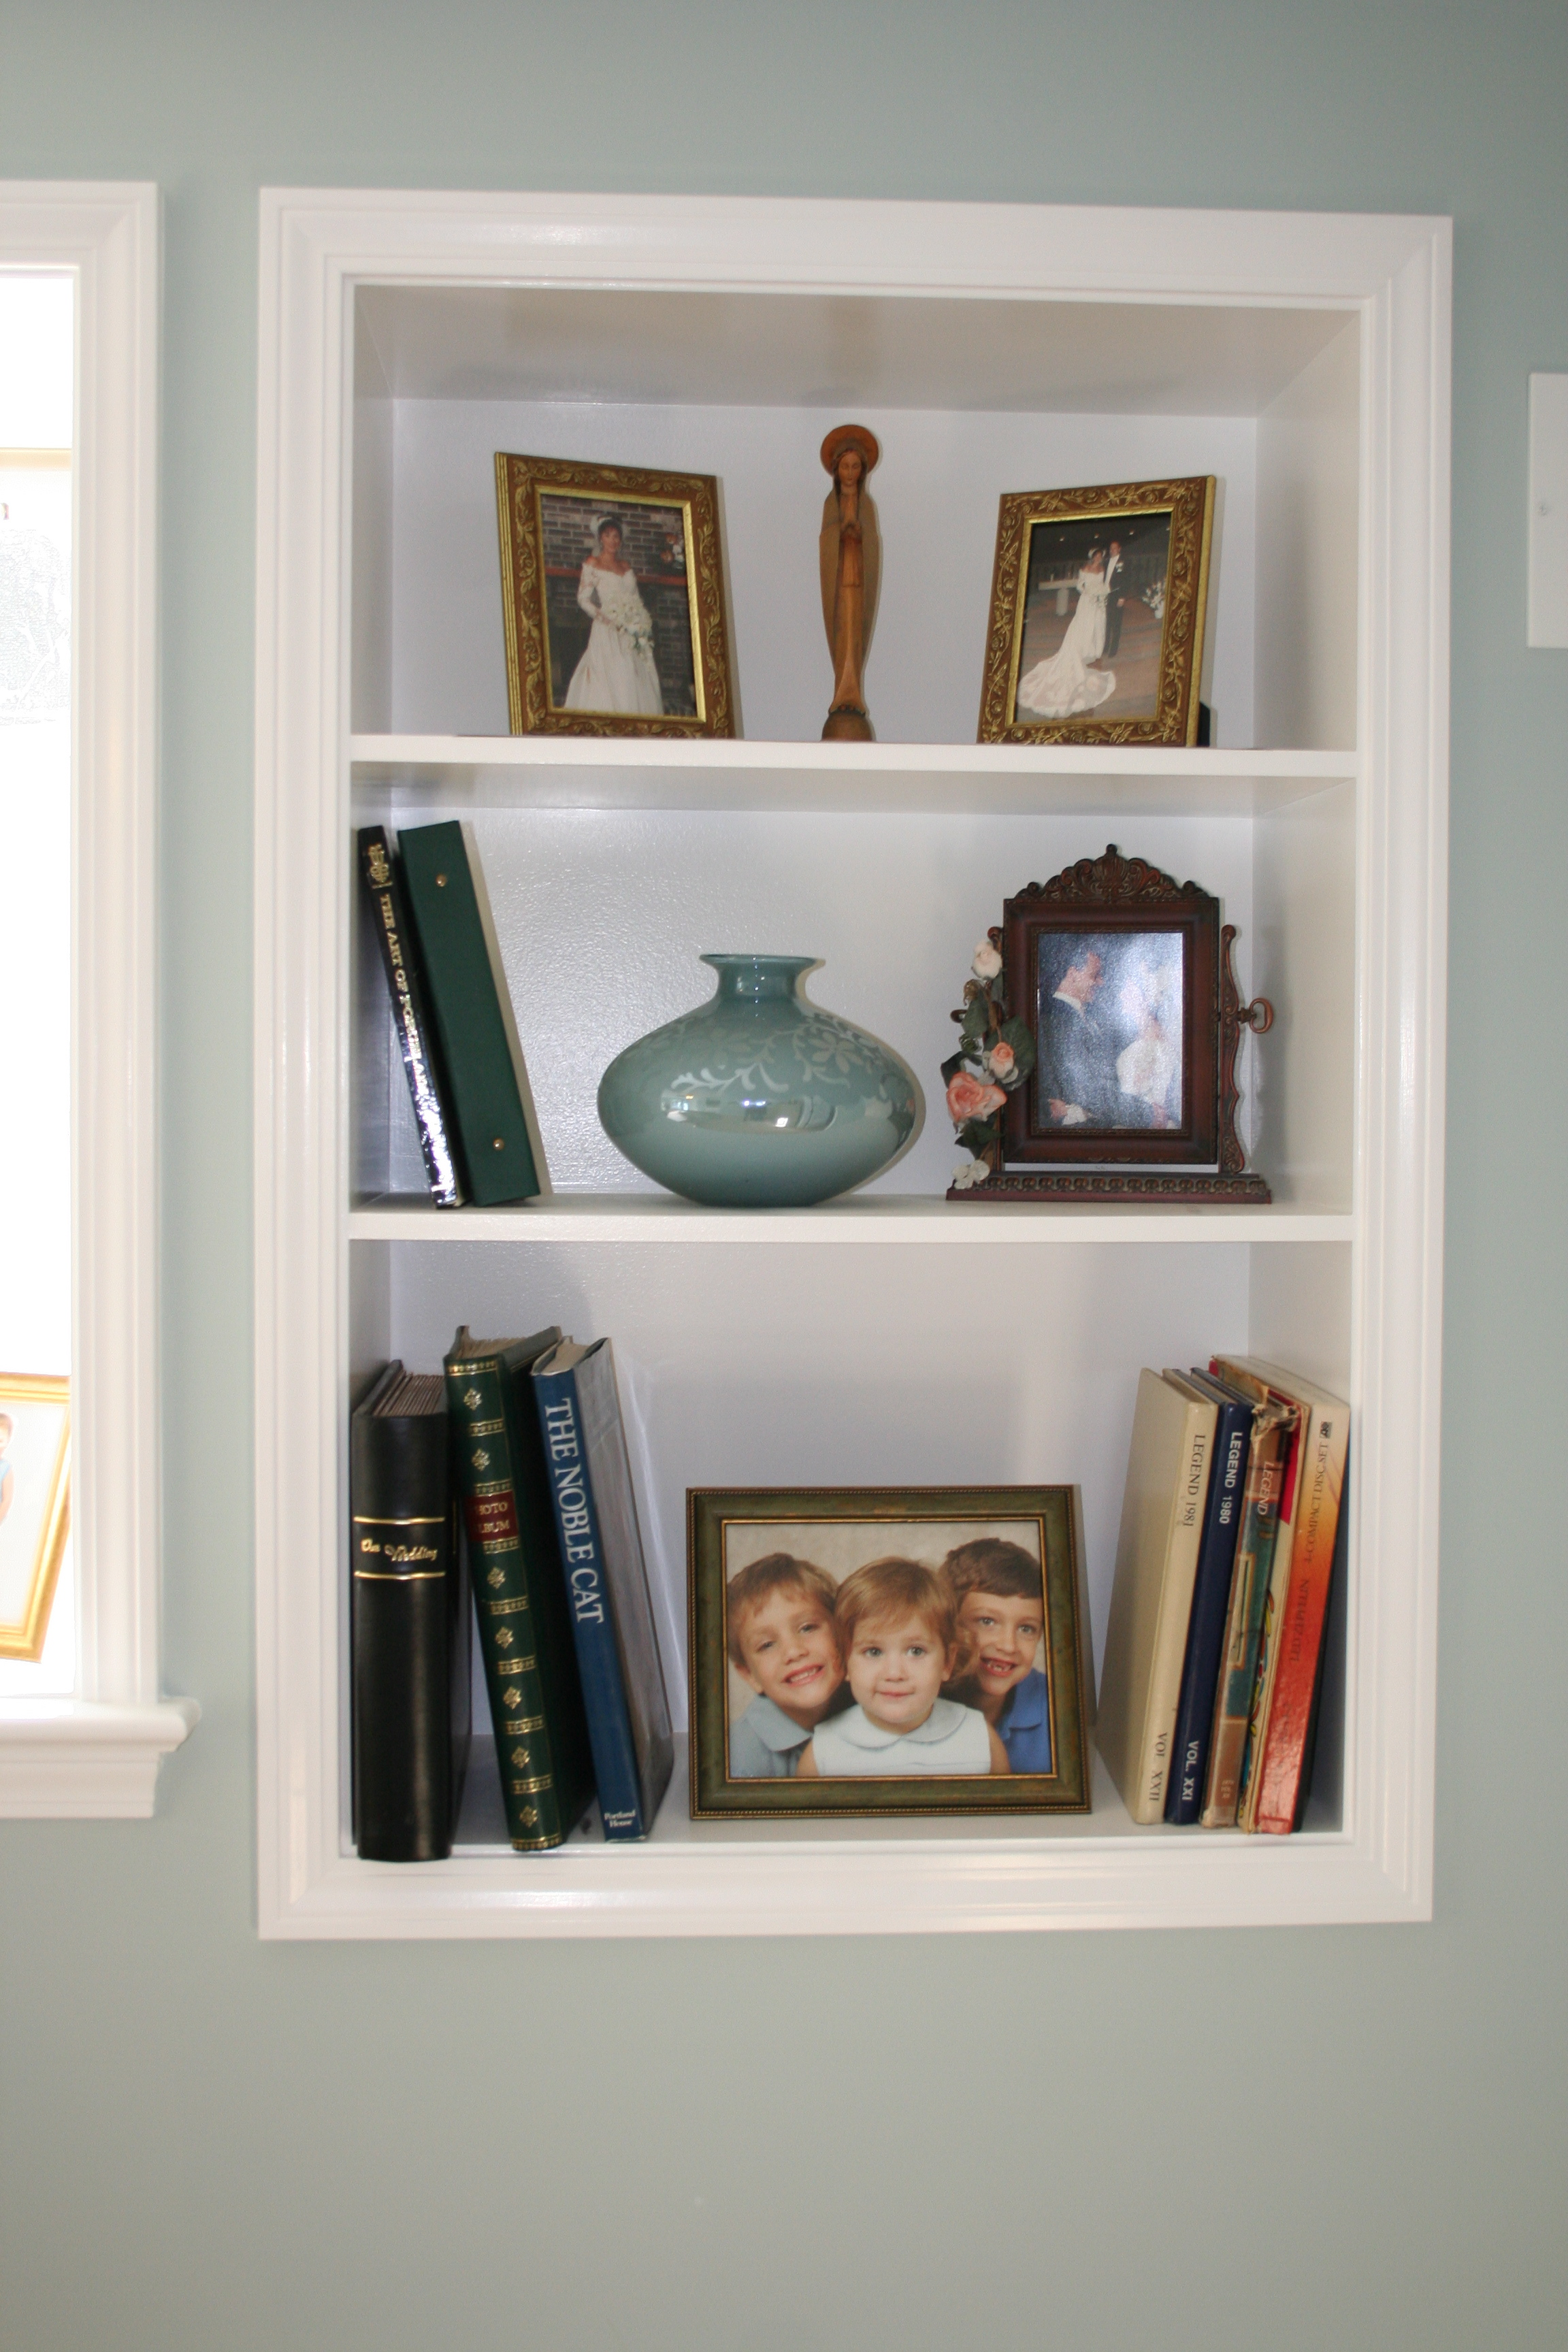 Small Cool Wall Shelves For Books